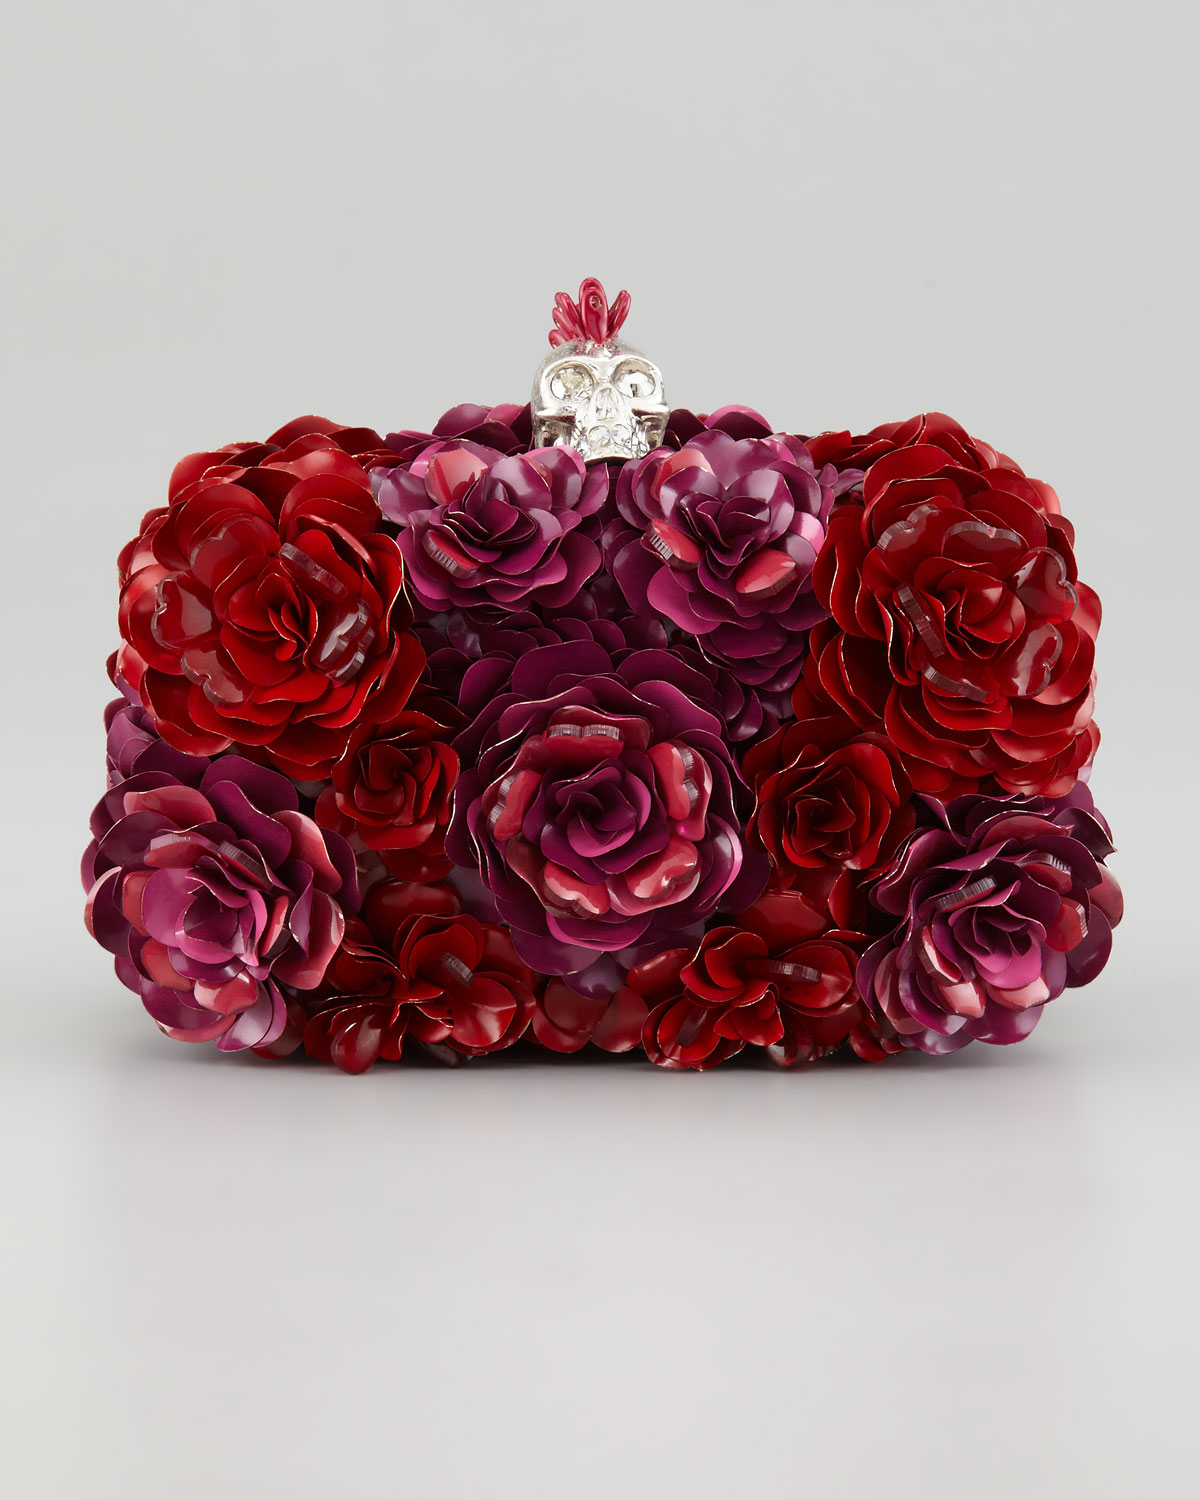 Red-rose-bridal-clutch-by-alexander-mcqueen.original